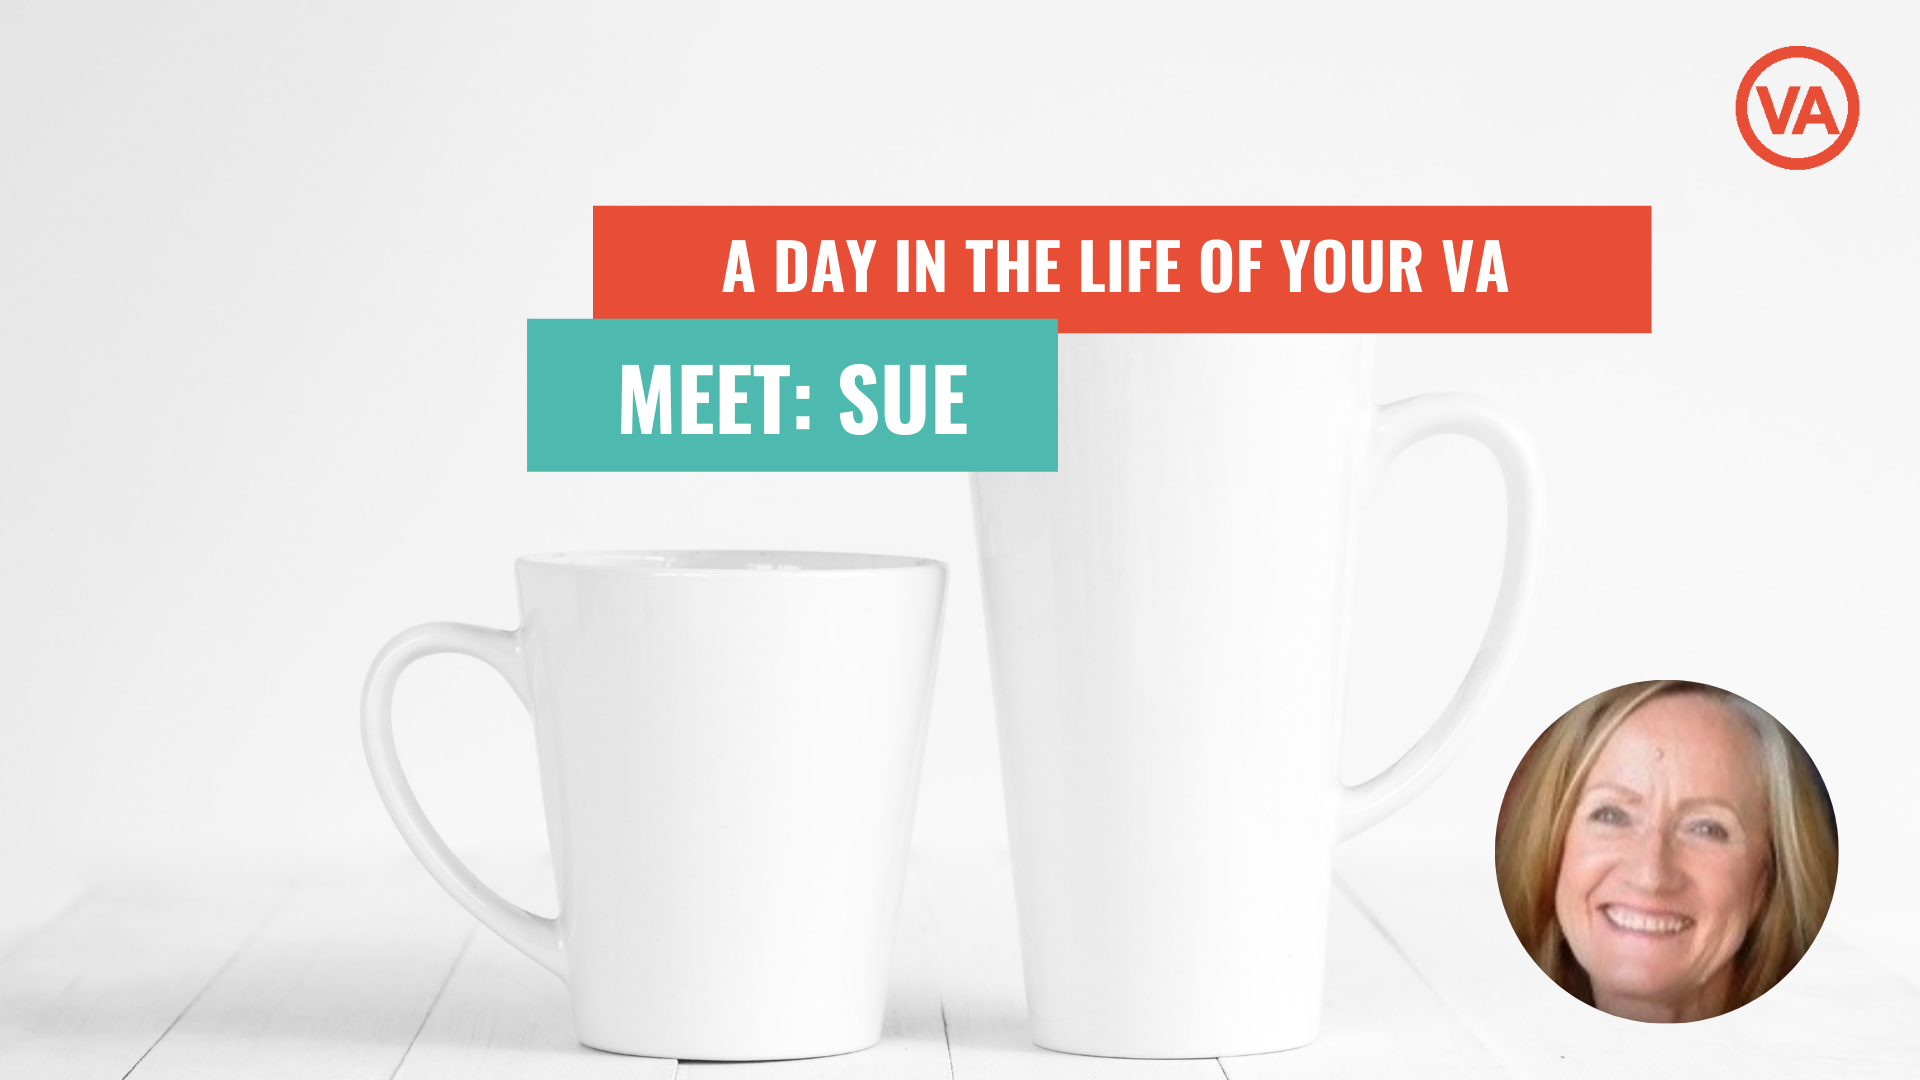 A Day in the Life of a VA: Meet Sue